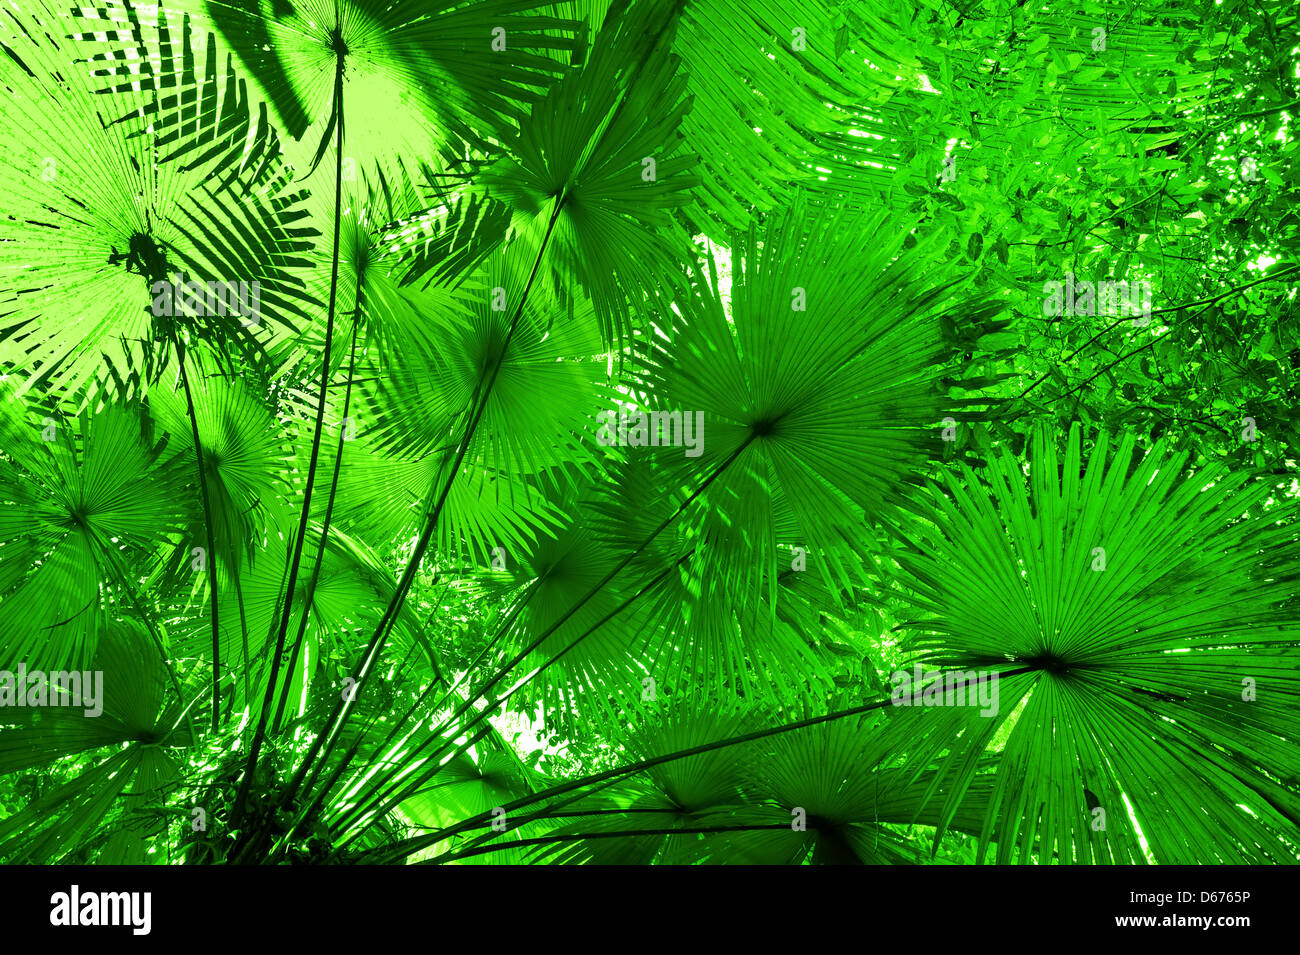 jungle forest background plant leaves in tropical